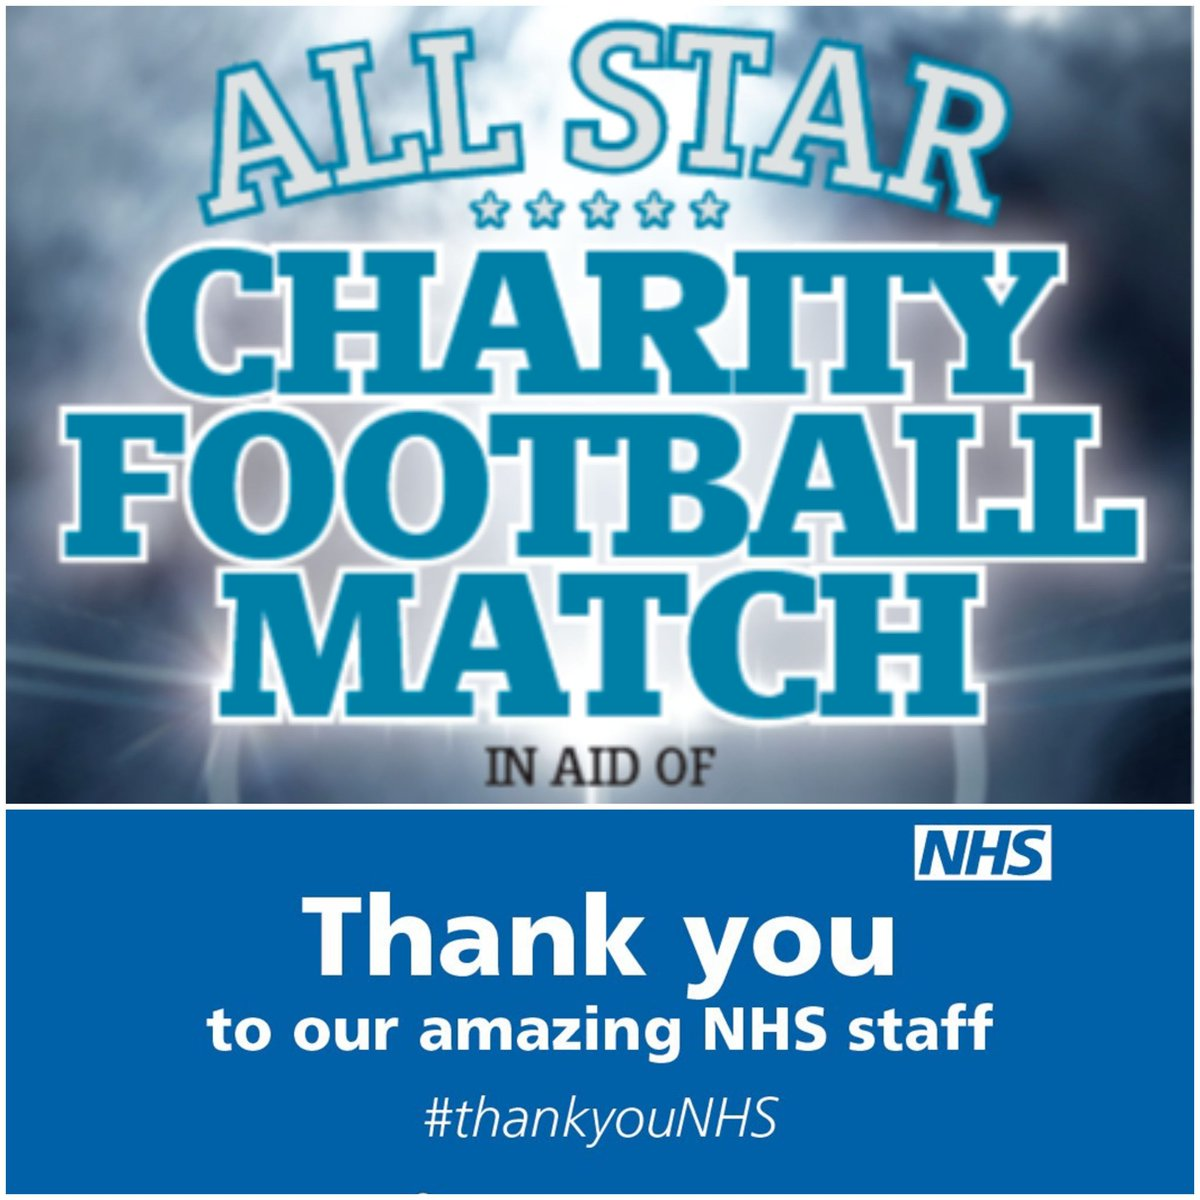 Very humbled at all the help and support being offered today for the Charity game in September. The ITFC family is truly awesome and the interest of attending is amazing. Cannot wait for the meeting with @FC_Clacton